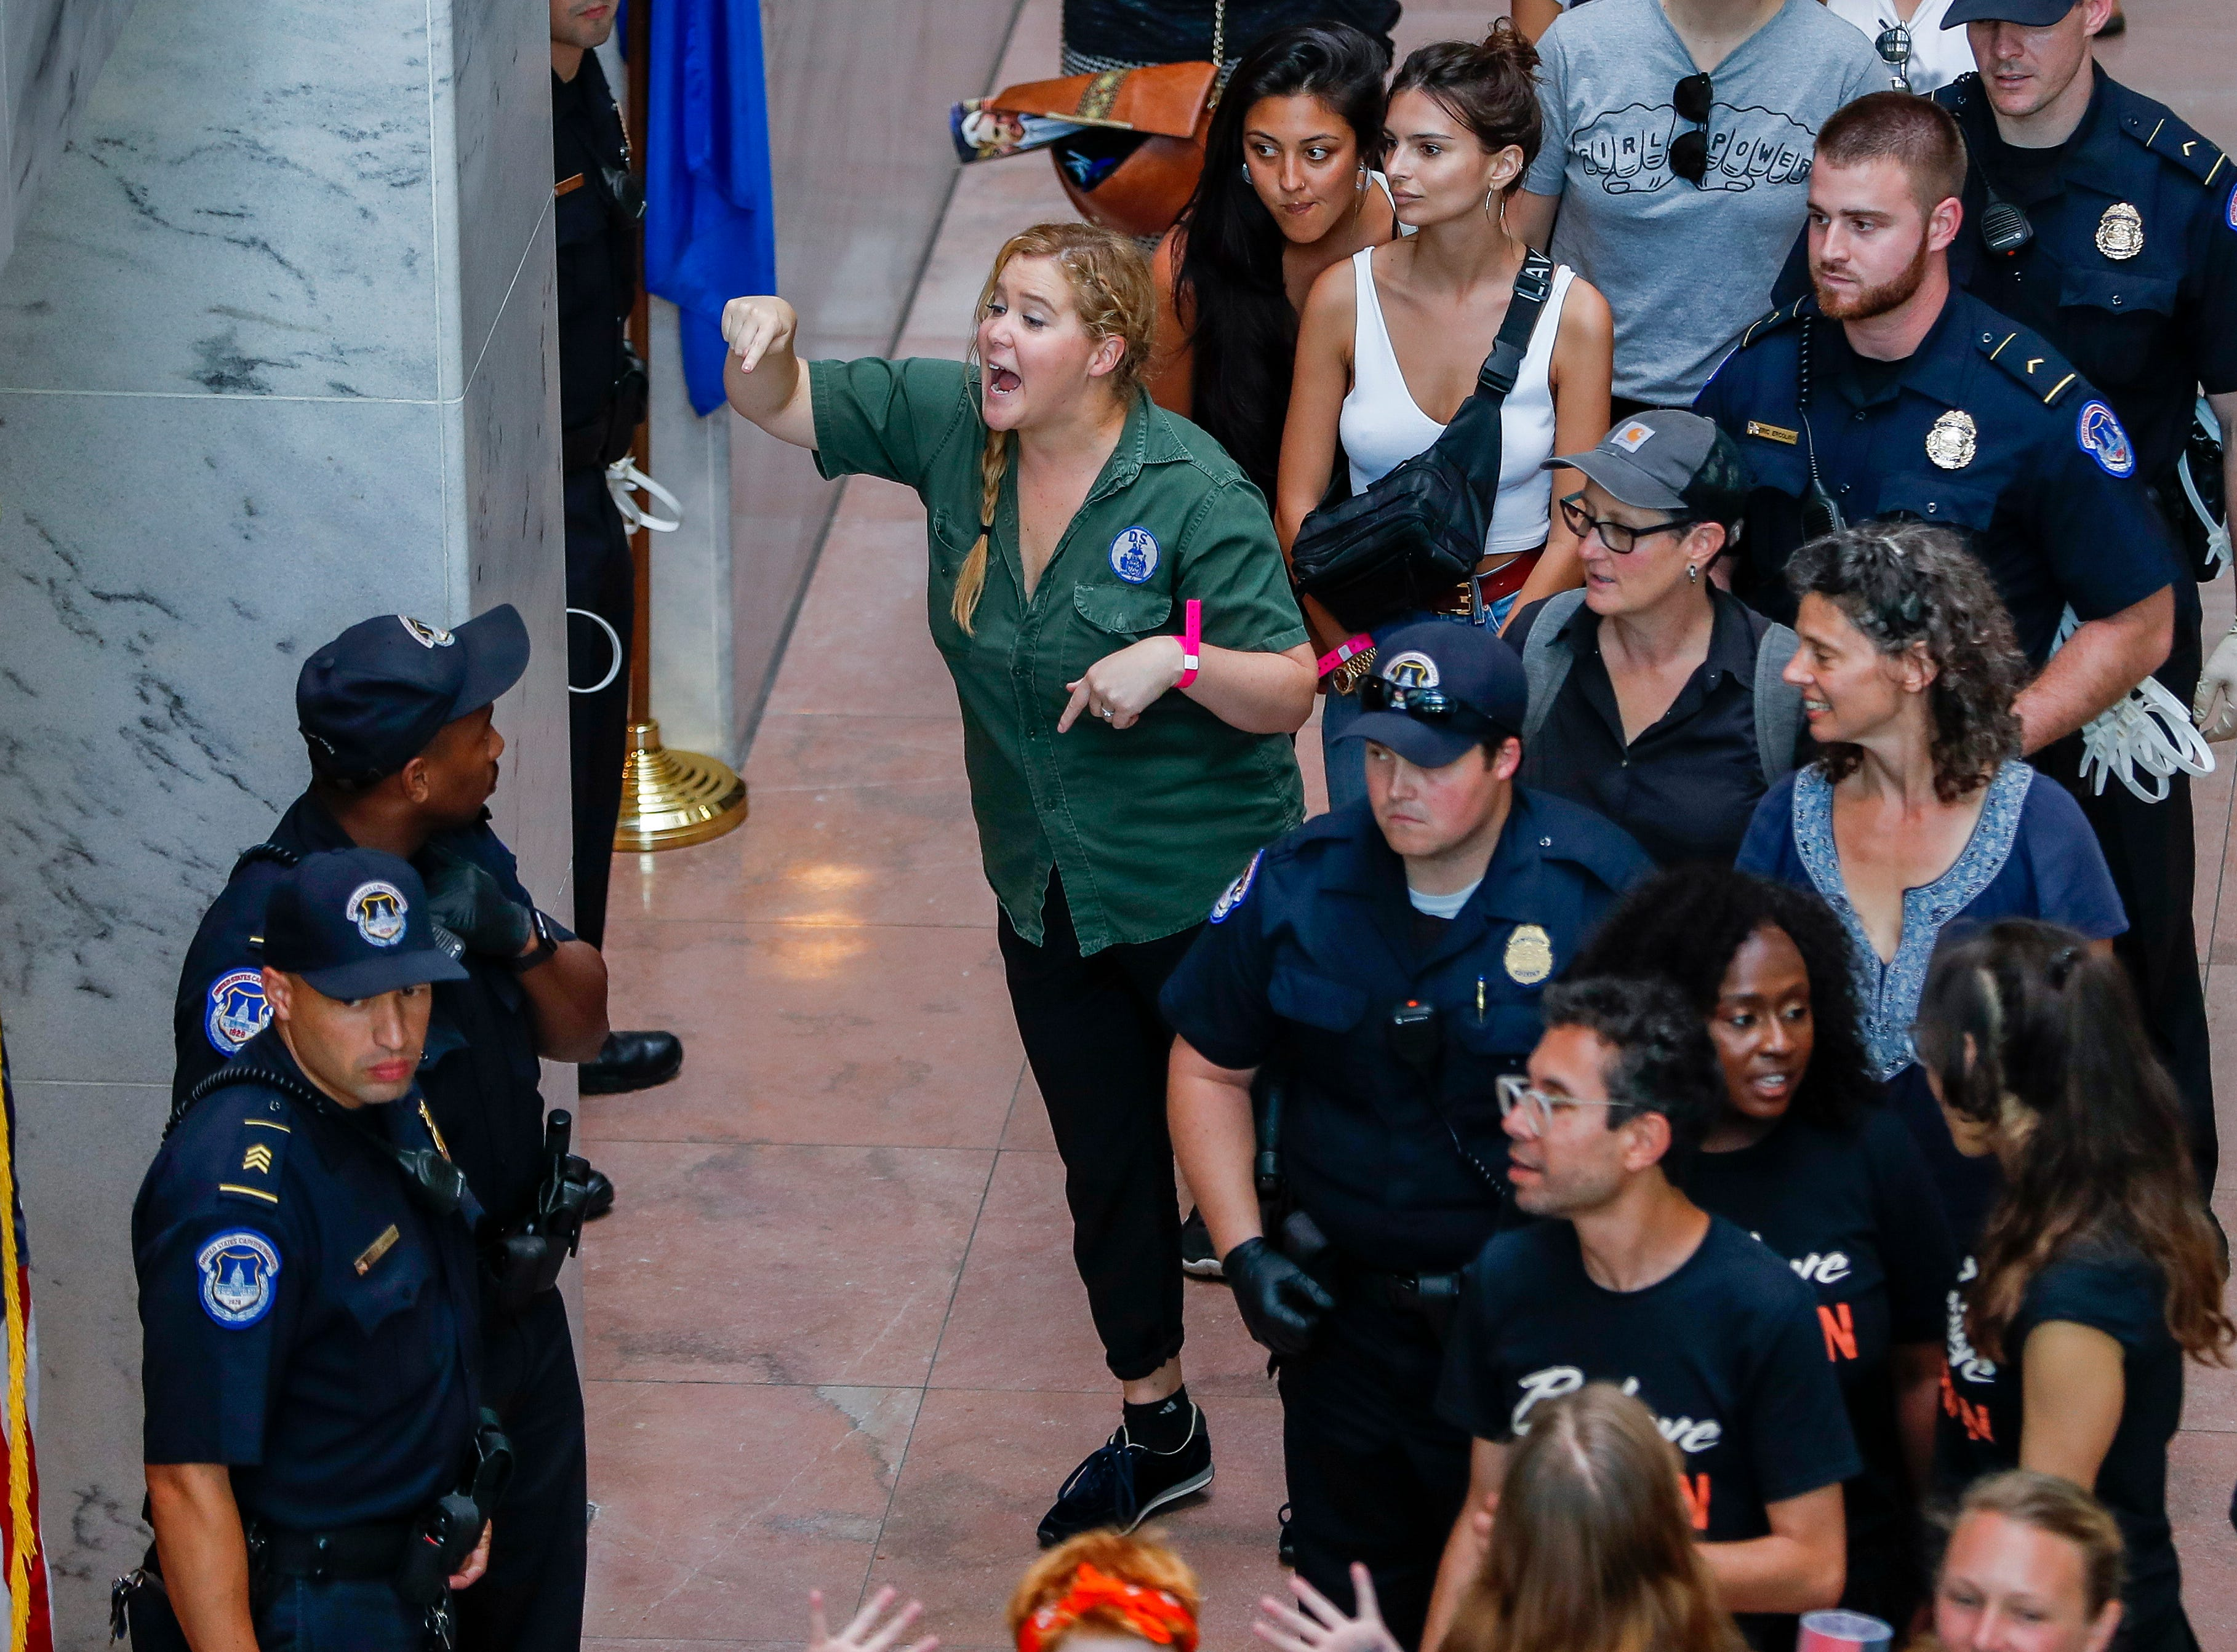 epa07070220 US comedian Amy Schumer gestures after getting detained along with hundreds of other protestors against the confirmation of Supreme Court nominee Judge Brett Kavanaugh at the Hart Senate Office Building in Washington, DC, USA, 04 October 2018.  EPA-EFE/ERIK S. LESSER ORG XMIT: ELX25